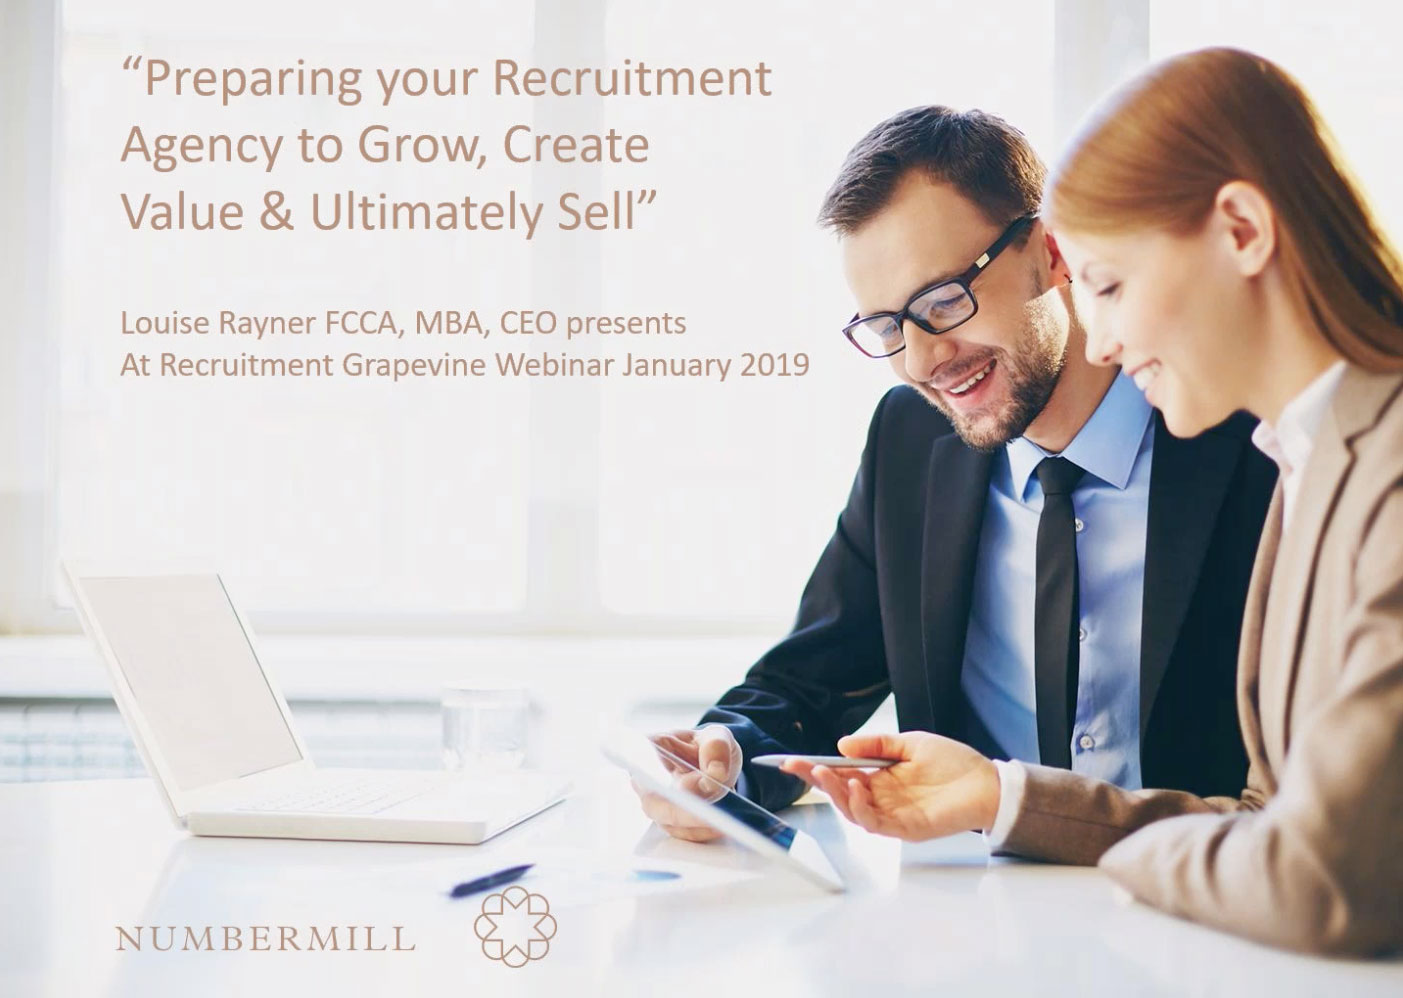 Webinar Preparing your Recruitment Agency to Grow, Create Value & Ultimately Sell